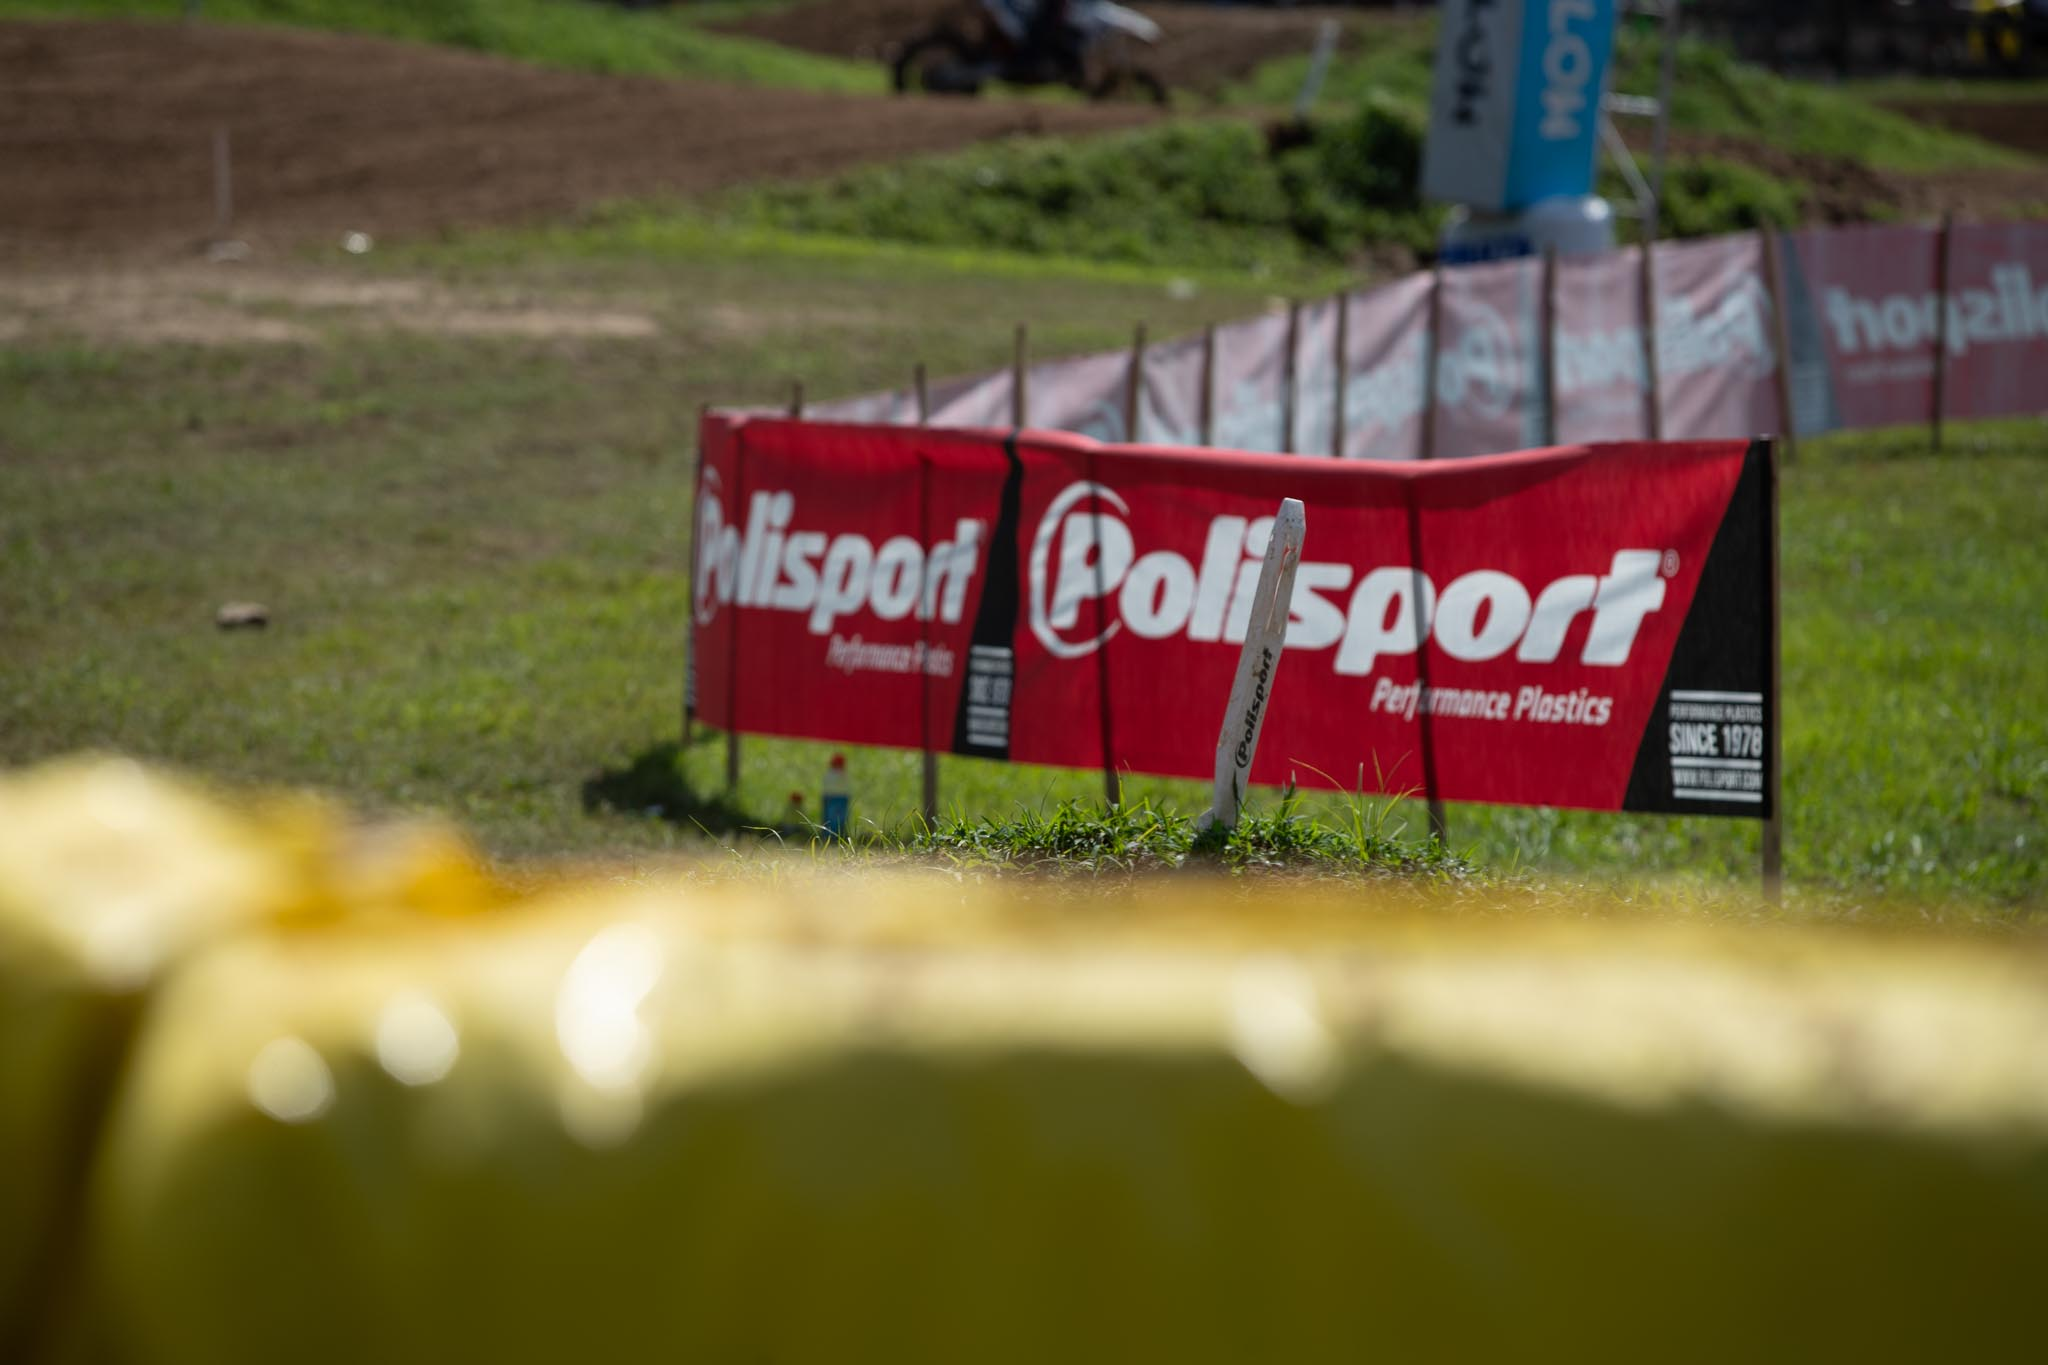 210729 Polisport returns as the official track marker and plastic of the 2021 Monster Energy AMA Amateur National Motocross Championship